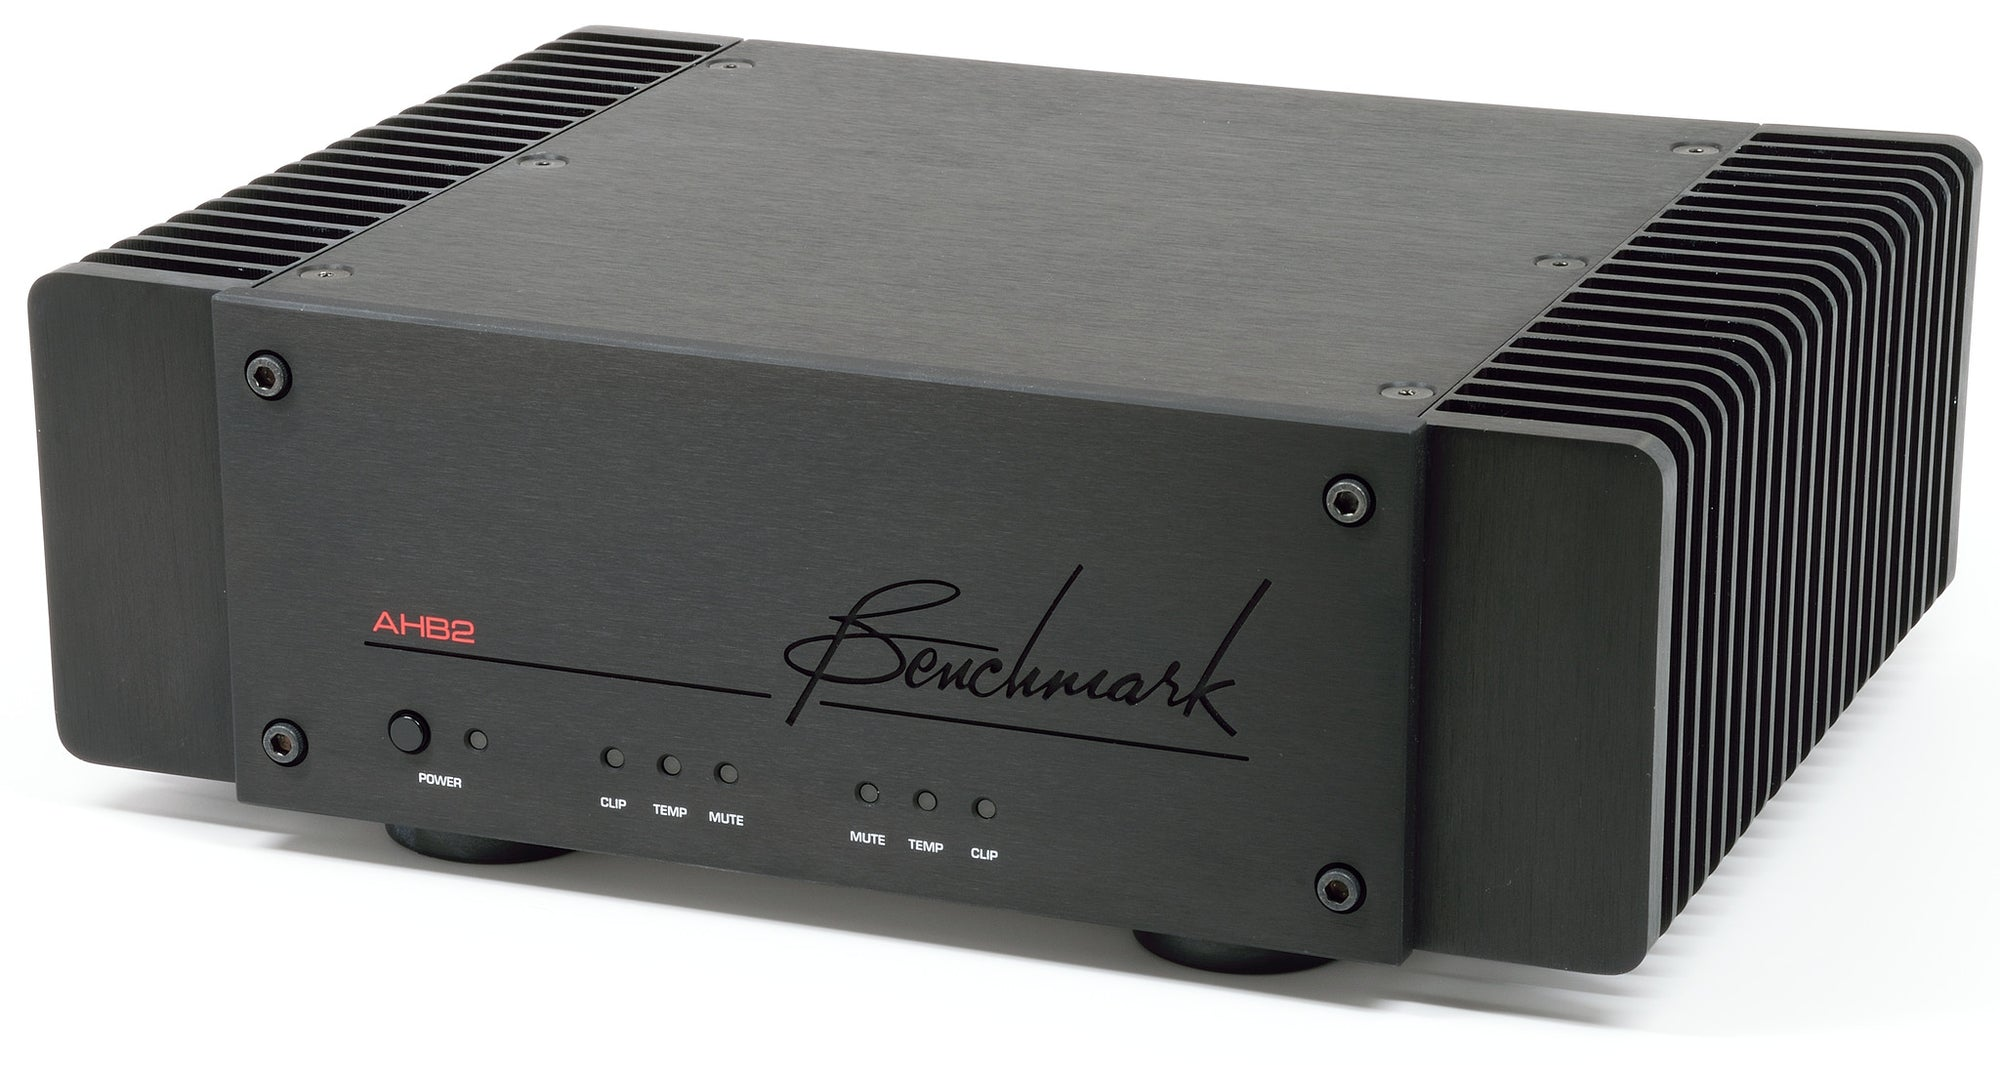 Benchmark Ahb2 Power Amplifier Media Systems Class A With 60 Watts Output